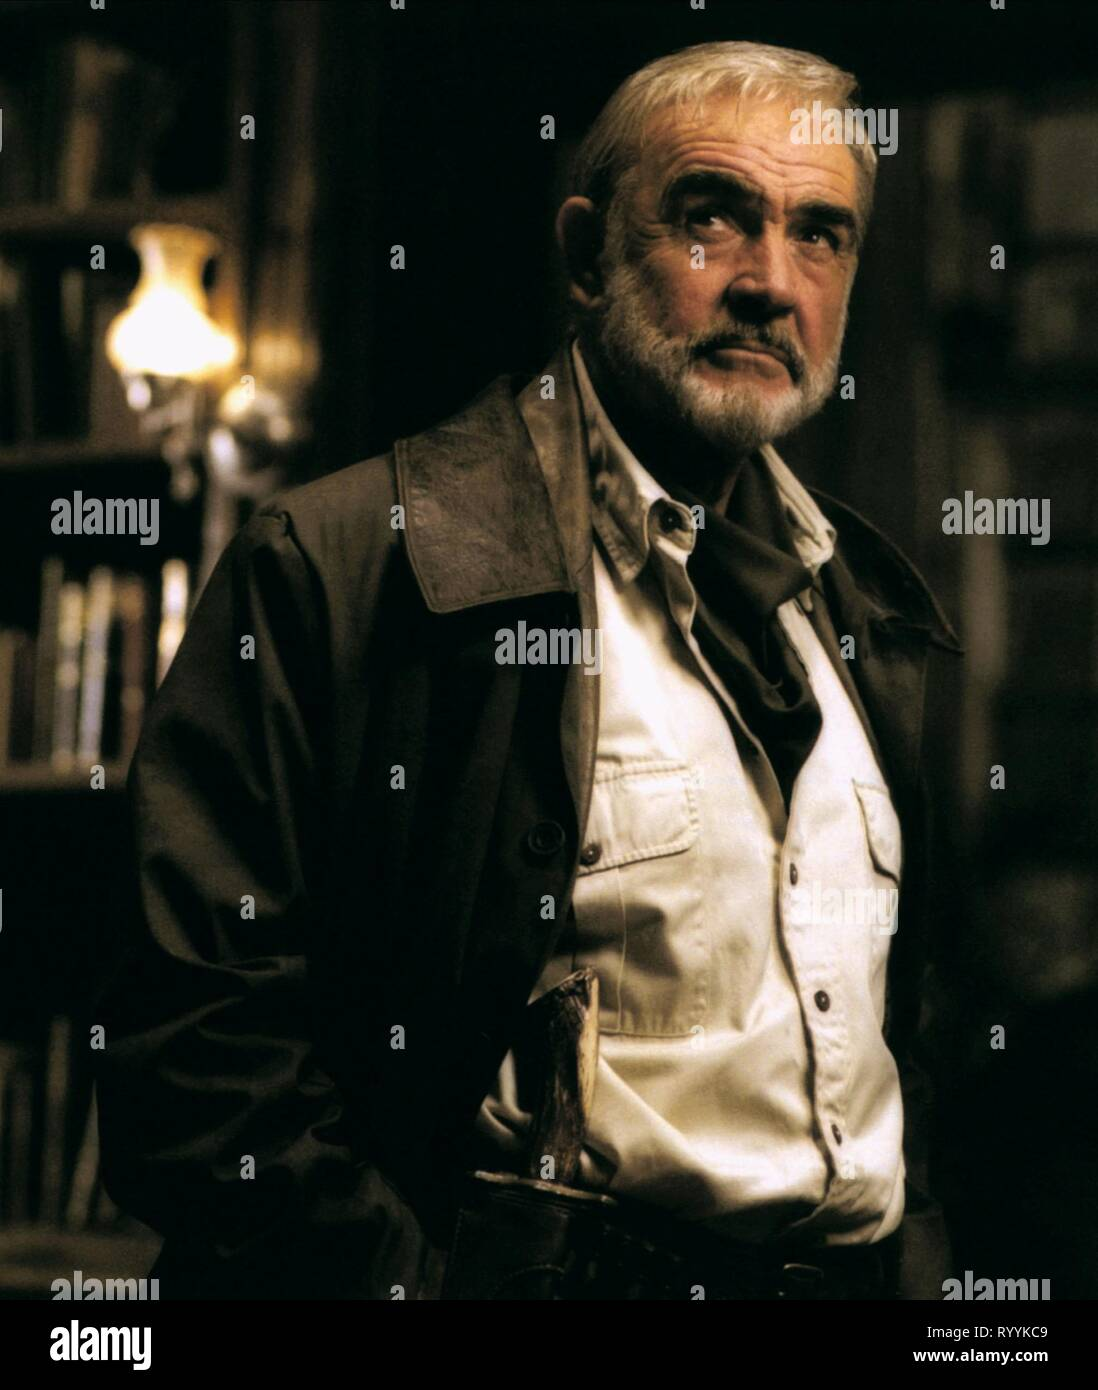 SEAN CONNERY, THE LEAGUE OF EXTRAORDINARY GENTLEMEN, 2003 - Stock Image